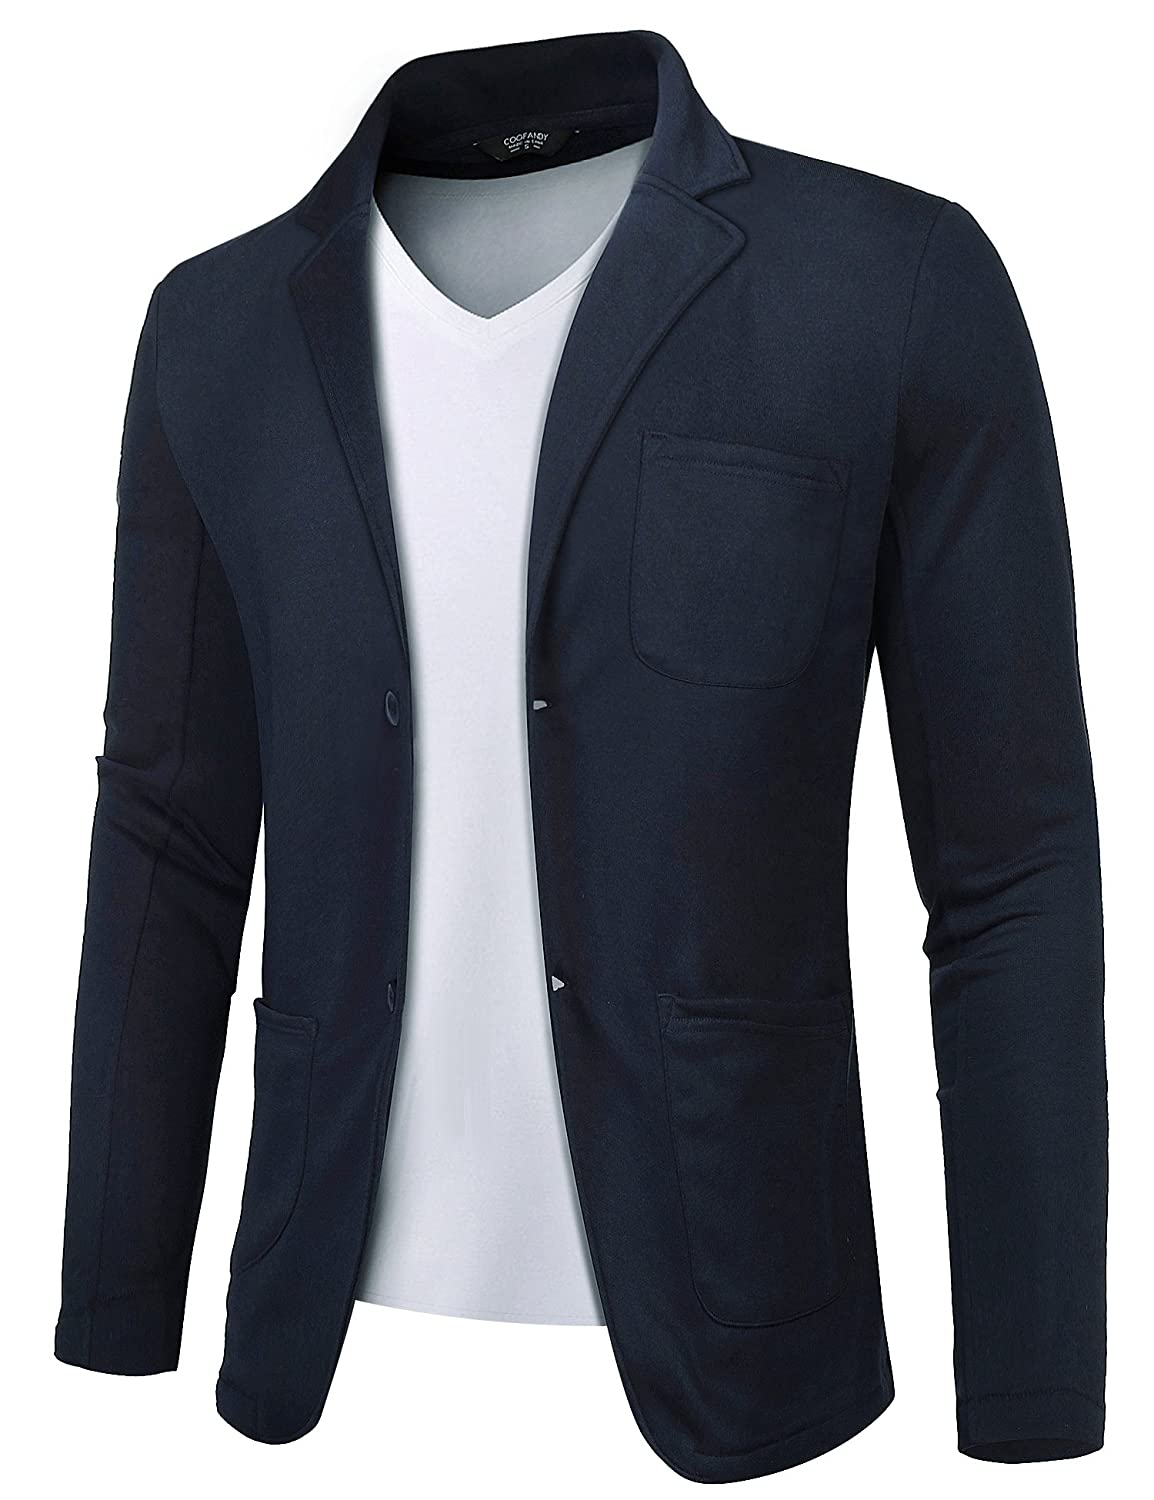 aa3ace810a COOFANDY Mens Cotton Casual Two Button Lapel Blazer Jacket Lightweight Sport  Coat at Amazon Men s Clothing store